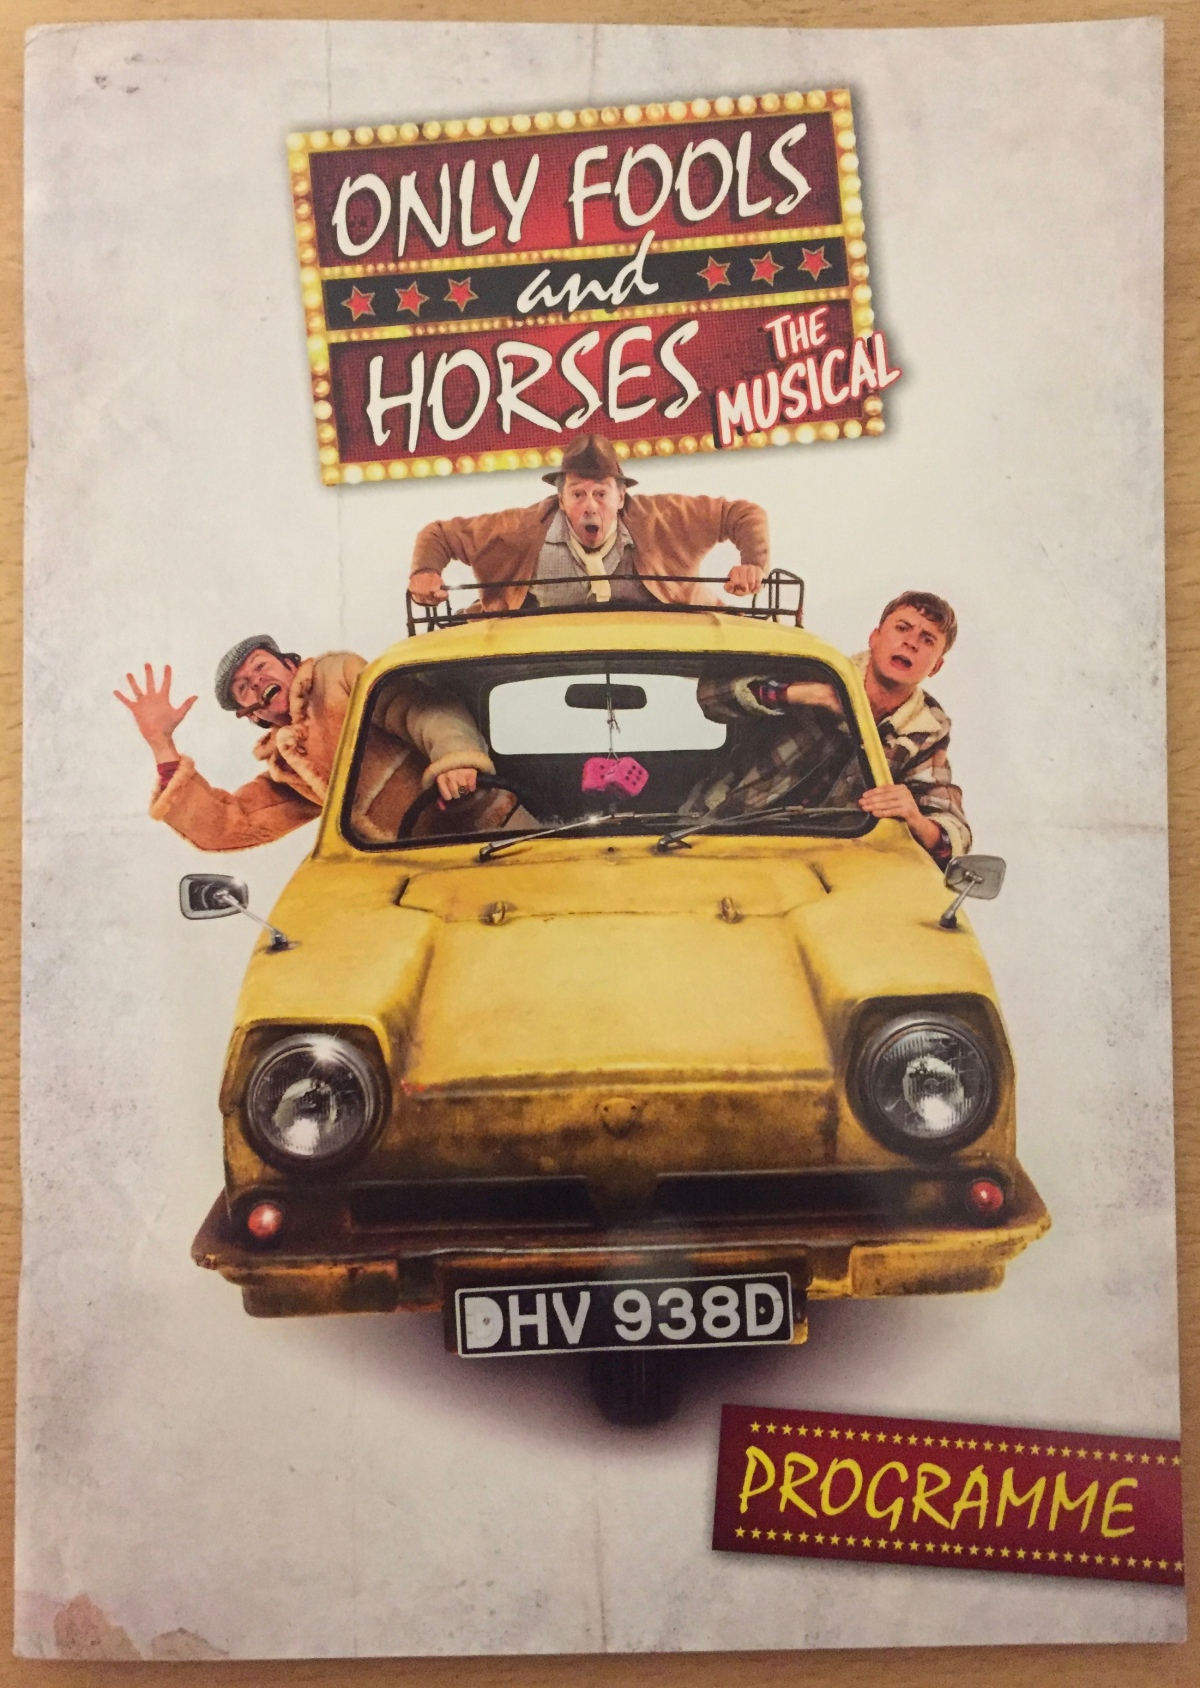 Cover of the programme for Only Fools And Horses, The Musical. Below the show logo is a large image of the yellow three-wheeled Reliant Regal van facing us, with 2 pink fluffy dice hanging from the rear view mirror in the centre. Del Boy and Rodney are leaning out of their side windows, with Del Boy waving and smiling with a cigar in his mouth, while Grandad is on the roof rack holding on tightly.